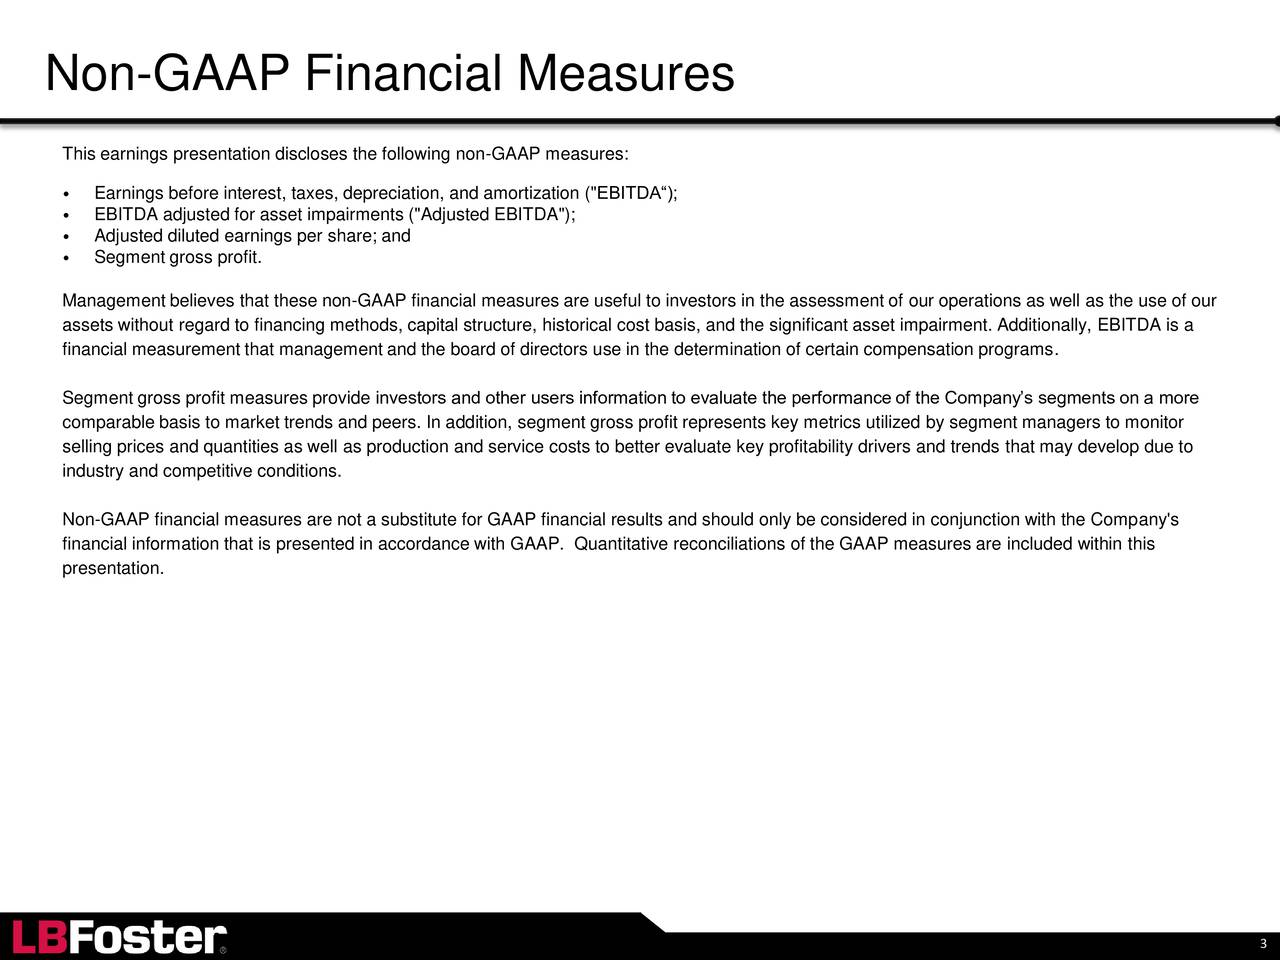 """This earnings presentation discloses the following non-GAAP measures: Earnings before interest, taxes, depreciation, and amortization (""""EBITDA); EBITDA adjusted for asset impairments (""""Adjusted EBITDA""""); Adjusted diluted earnings per share; and Segment gross profit. Management believes that these non-GAAP financial measures are useful to investors in the assessment of our operations as well as the use of our assets without regard to financing methods, capital structure, historical cost basis, and the significant asset impairment. Additionally, EBITDA is a financial measurement that management and the board of directors use in the determination of certain compensation programs. Segment gross profit measures provide investors and other users information to evaluate the performance of the Companys segments on a more comparable basis to market trends and peers. In addition, segment gross profit represents key metrics utilized by segment managers to monitor selling prices and quantities as well as production and service costs to better evaluate key profitability drivers and trends that may develop due to industry and competitive conditions. Non-GAAP financial measures are not a substitute for GAAP financial results and should only be considered in conjunction with the Company's financial information that is presented in accordance with GAAP. Quantitative reconciliations of the GAAP measures are included within this presentation. 3"""